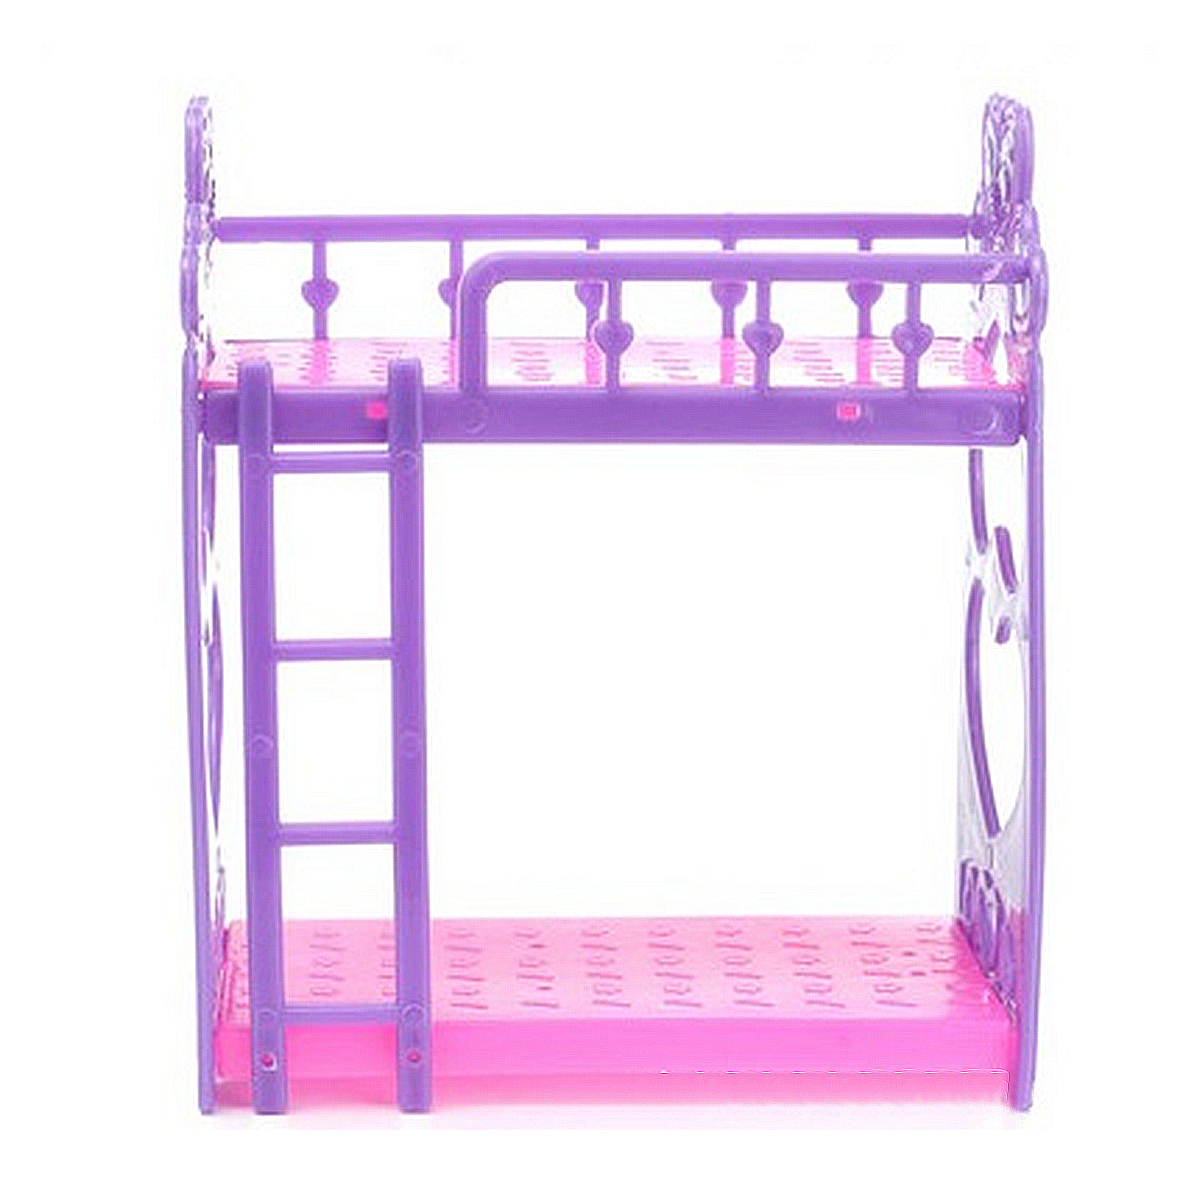 1pcs/Set Cute Hot Pink Dolls <font><b>House</b></font> Plastic Bunk Bed Play <font><b>House</b></font> kids <font><b>Toys</b></font> Assembly Doll Furniture Accessories <font><b>Toys</b></font> <font><b>For</b></font> Children image